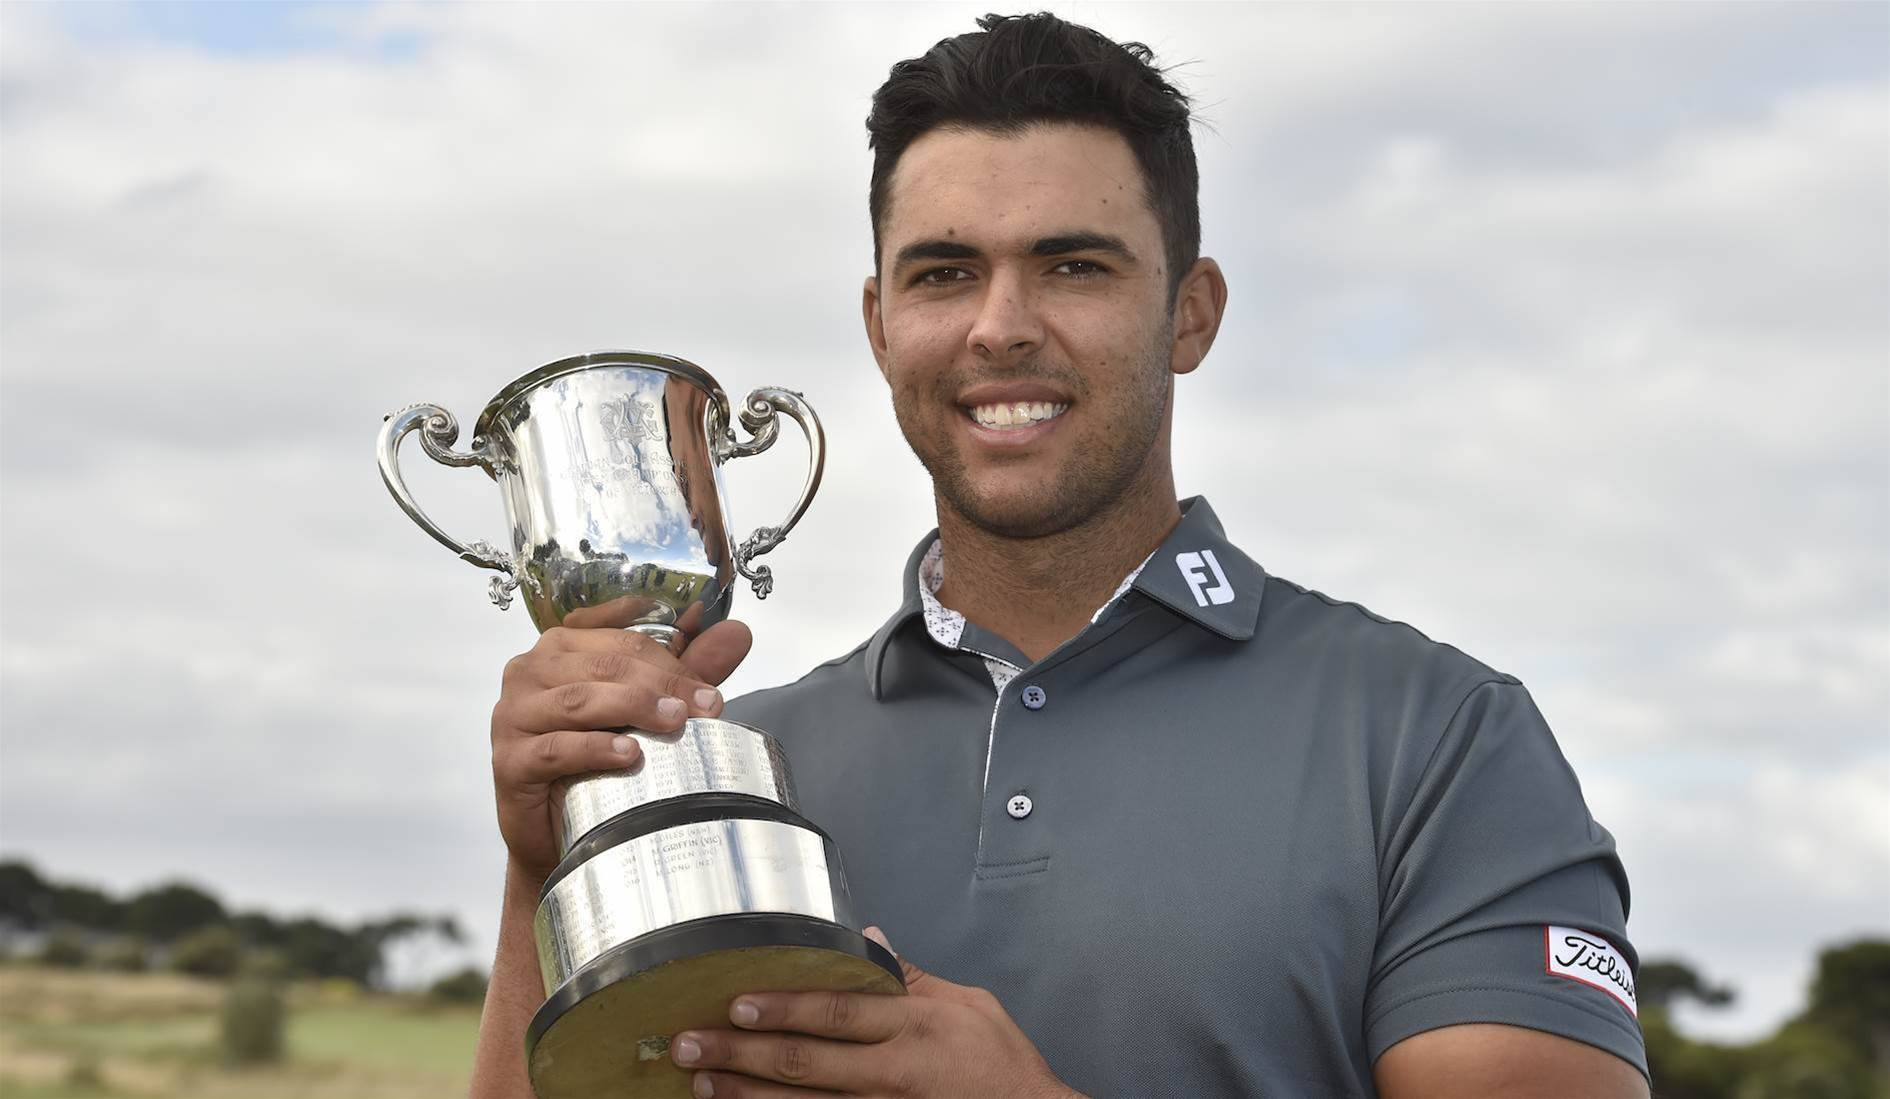 VIC OPEN: Hard work pays off for Papadatos